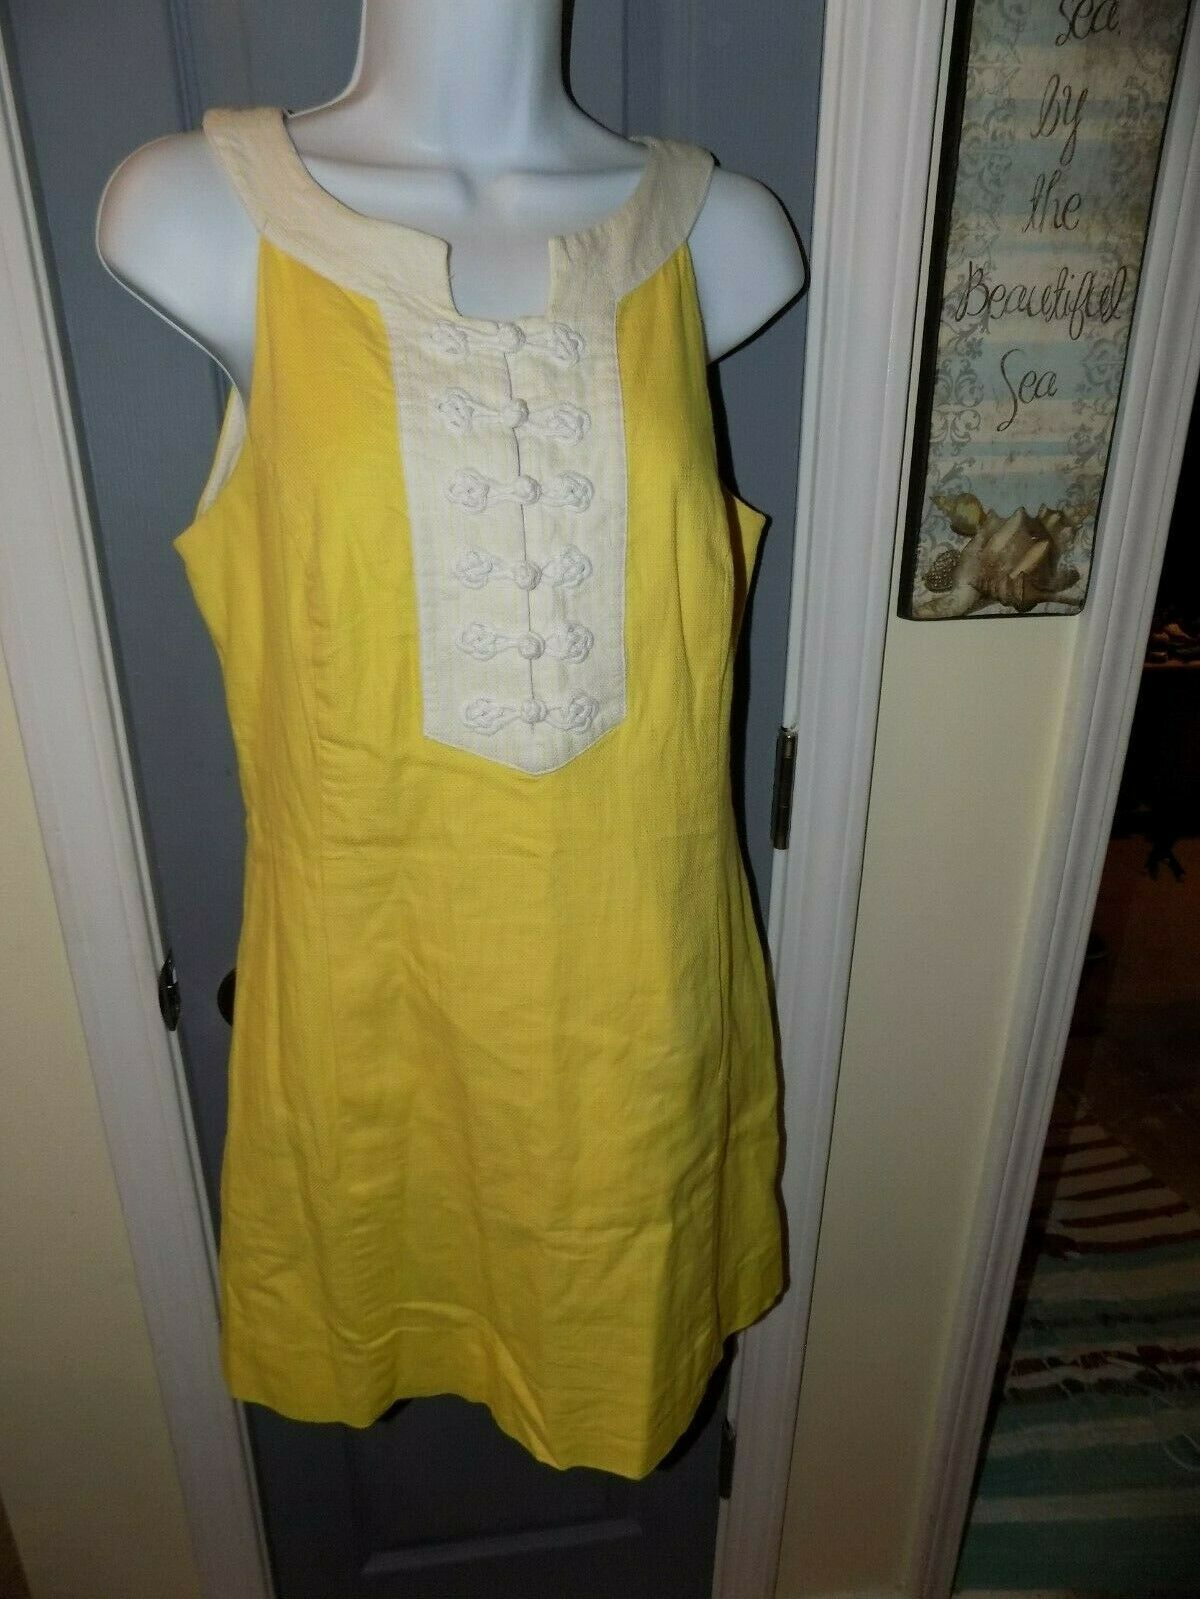 Primary image for Lilly Pulitzer Yellow Nautical Knot Shift Dress Size 8 Women's EUC